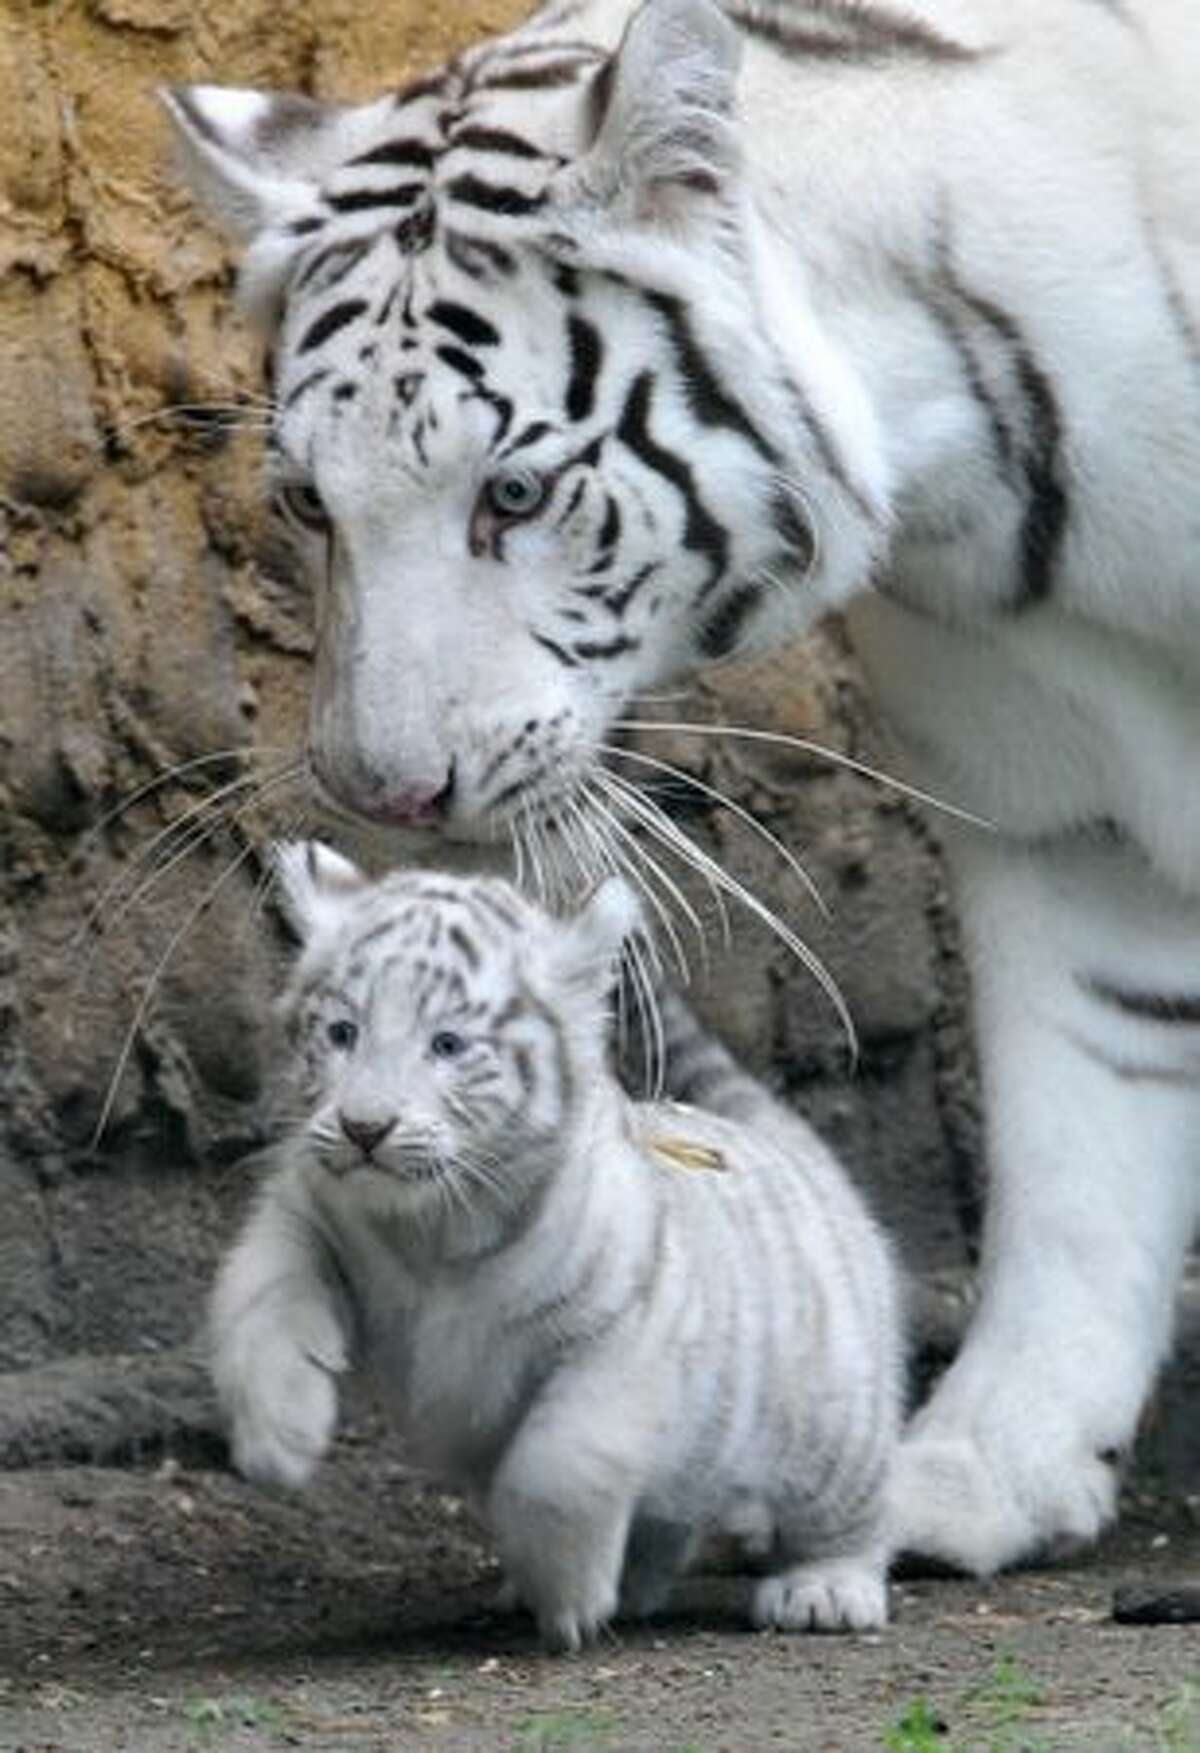 A white tiger cub is carried by its mother Bianca at the Serengeti animal park in Hodenhagen, central Germany. Four white baby tigers were born at the park on July 14, 2010.